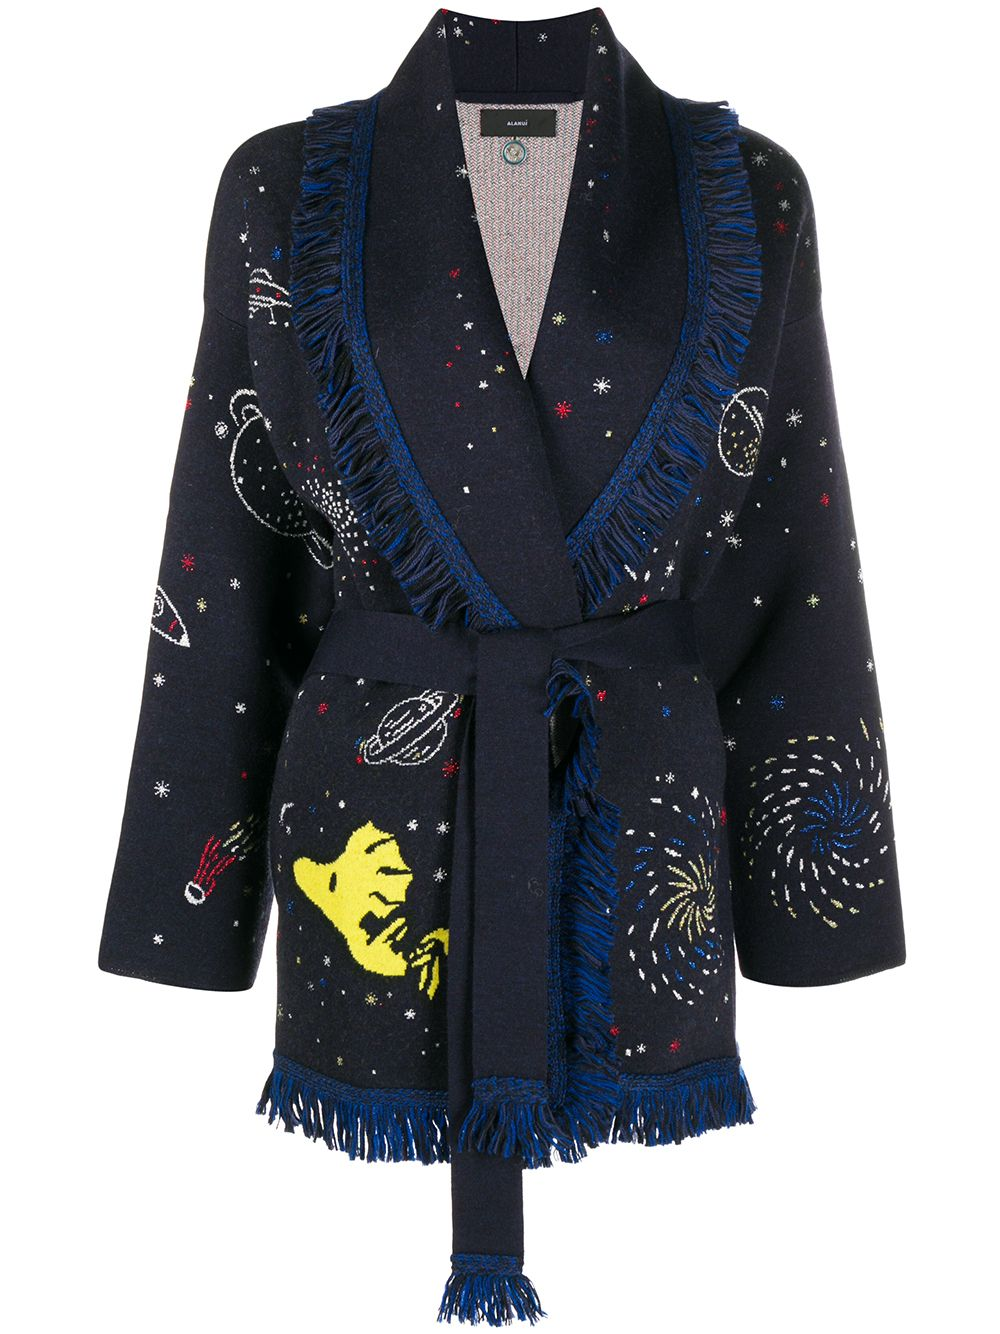 Snoopy Space Out Cashmere Cardigan